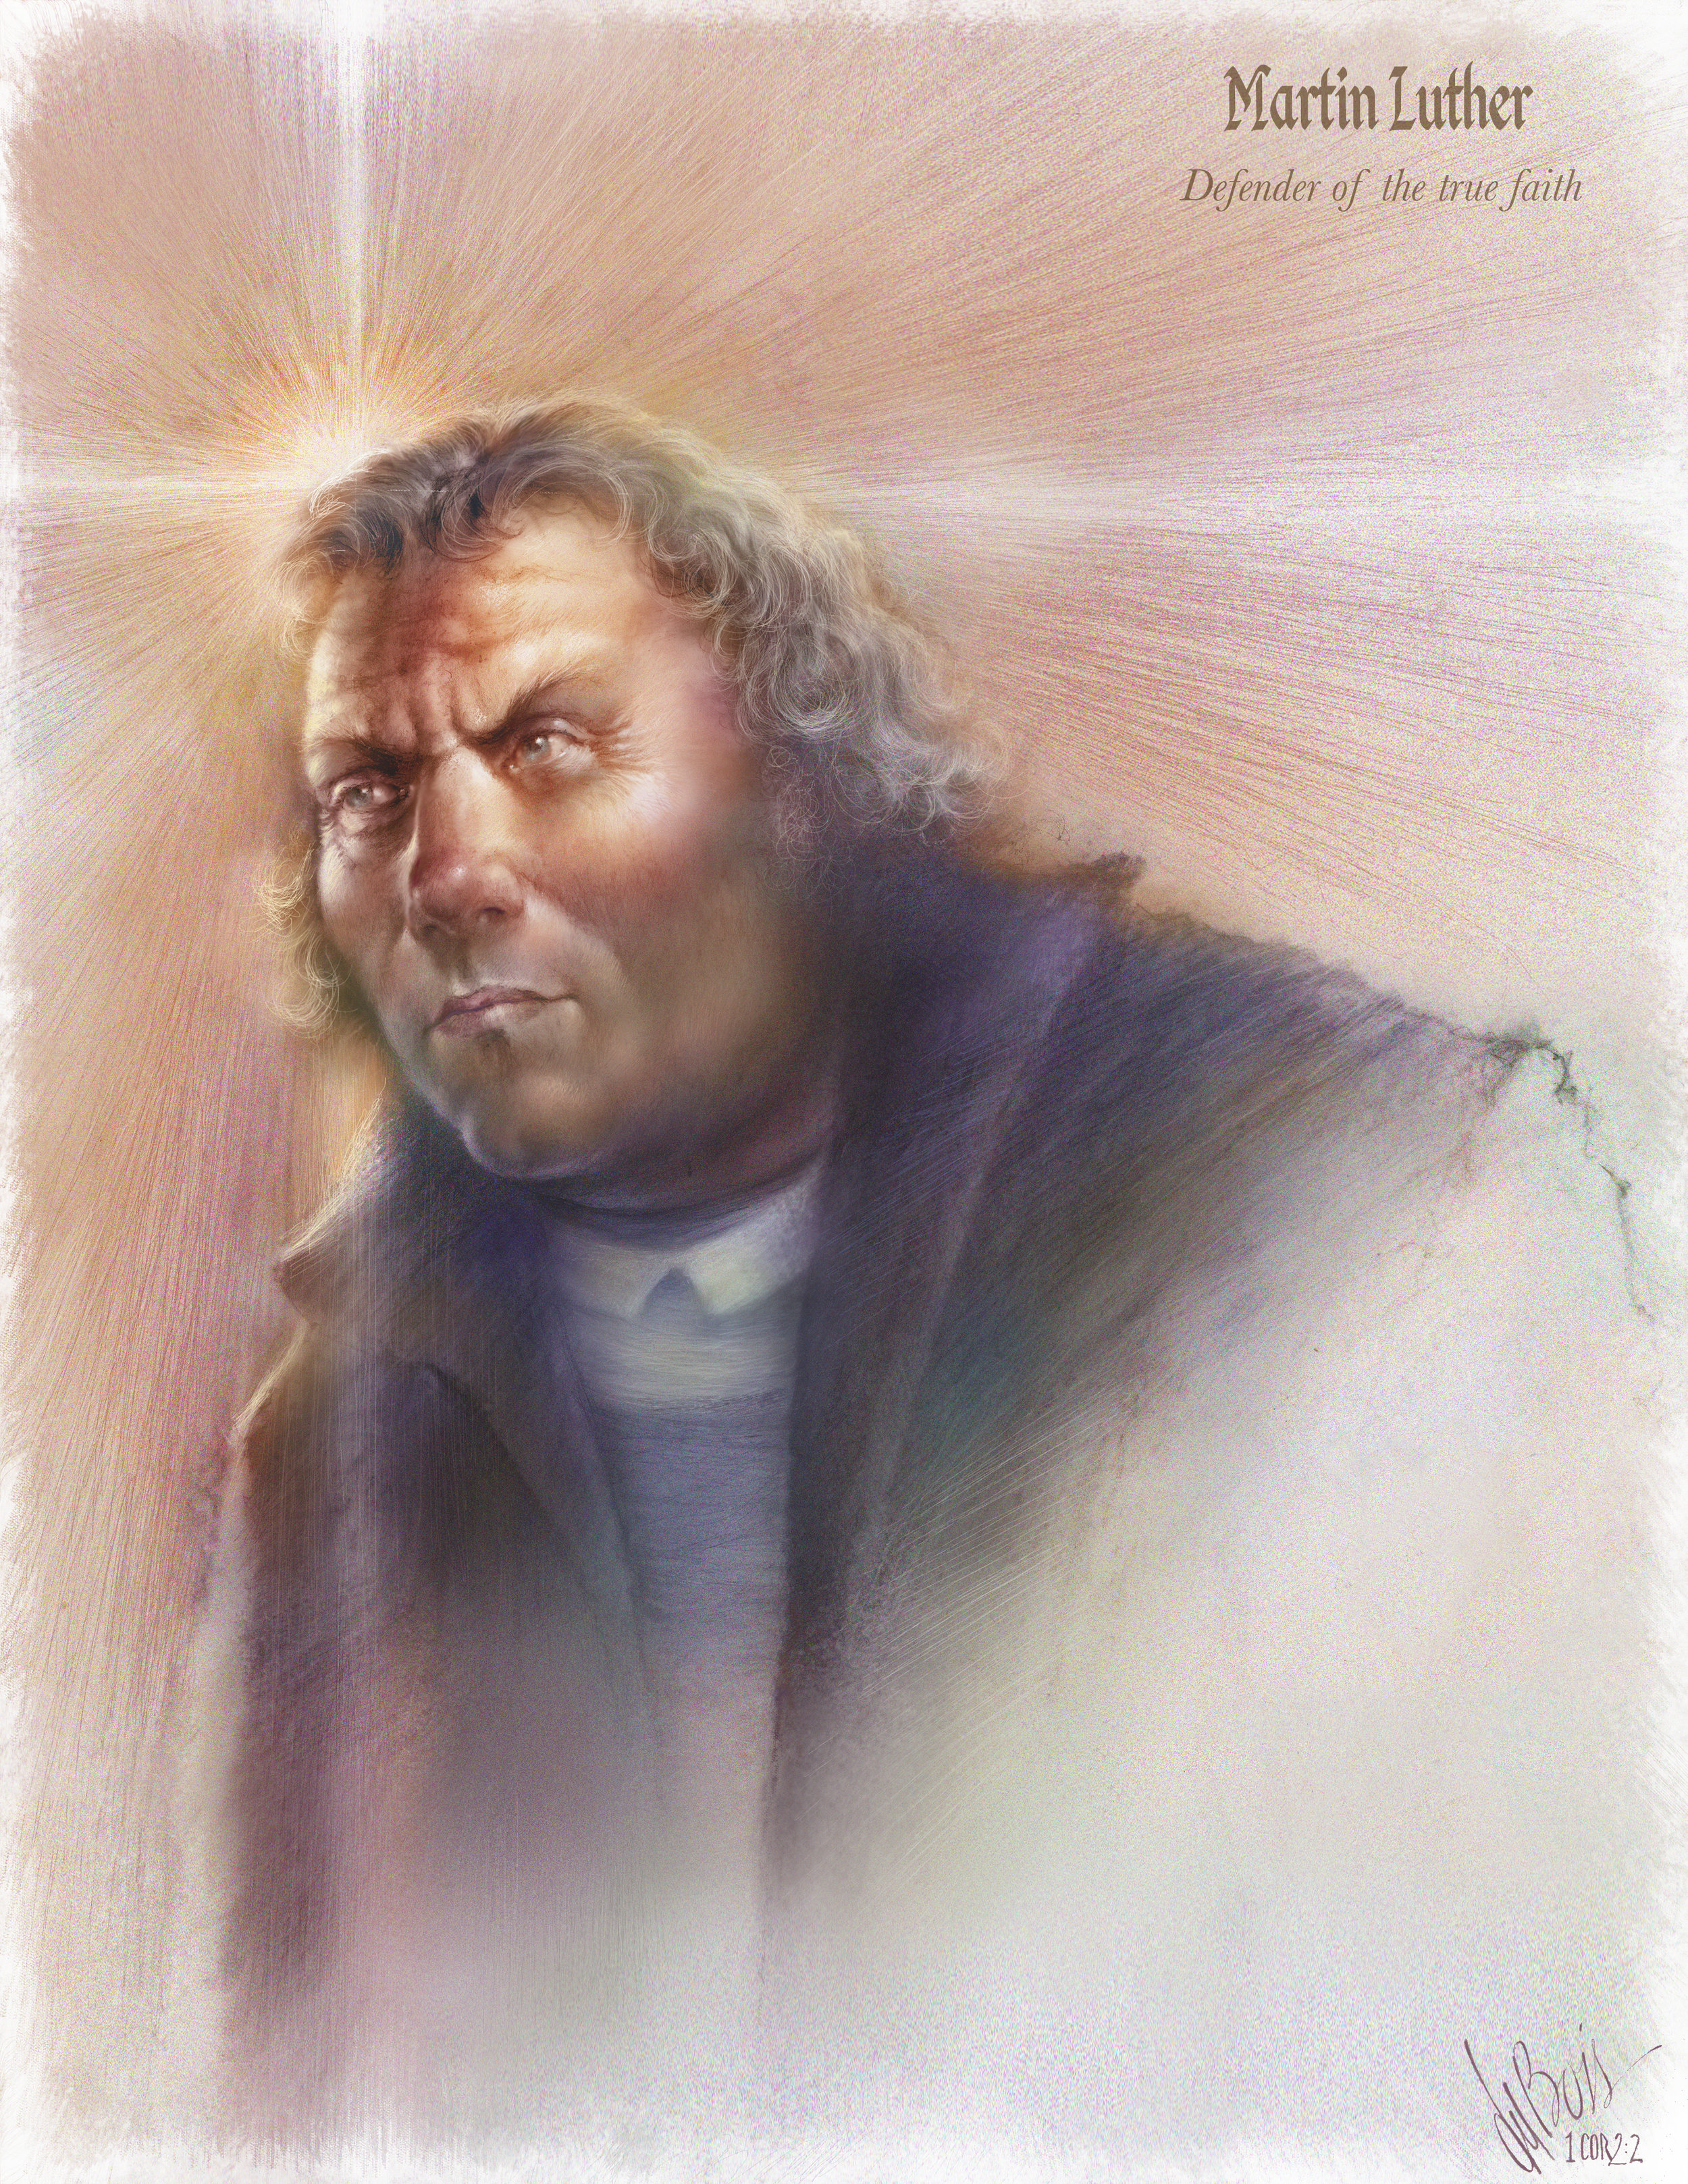 Luther - Defender of the True Faith